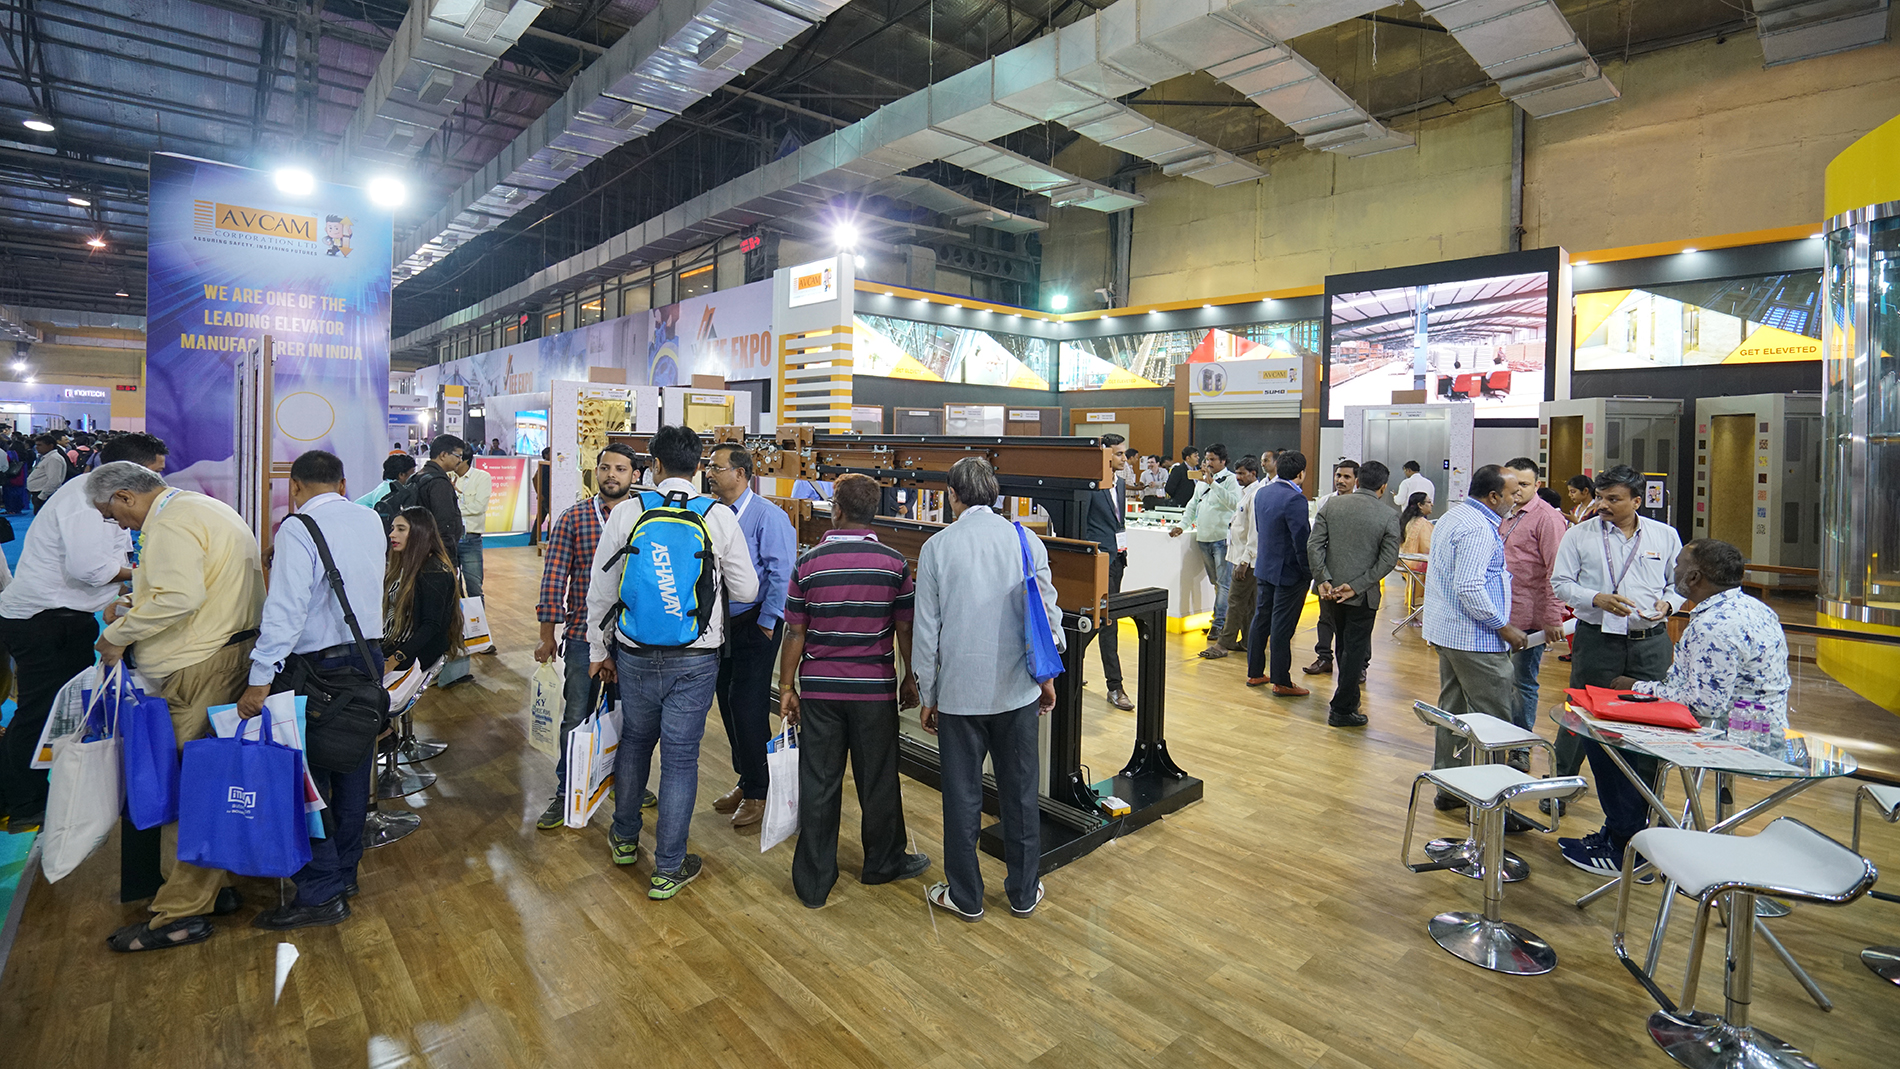 Exhibitors and visitors at IEE Expo (Source: MF India)